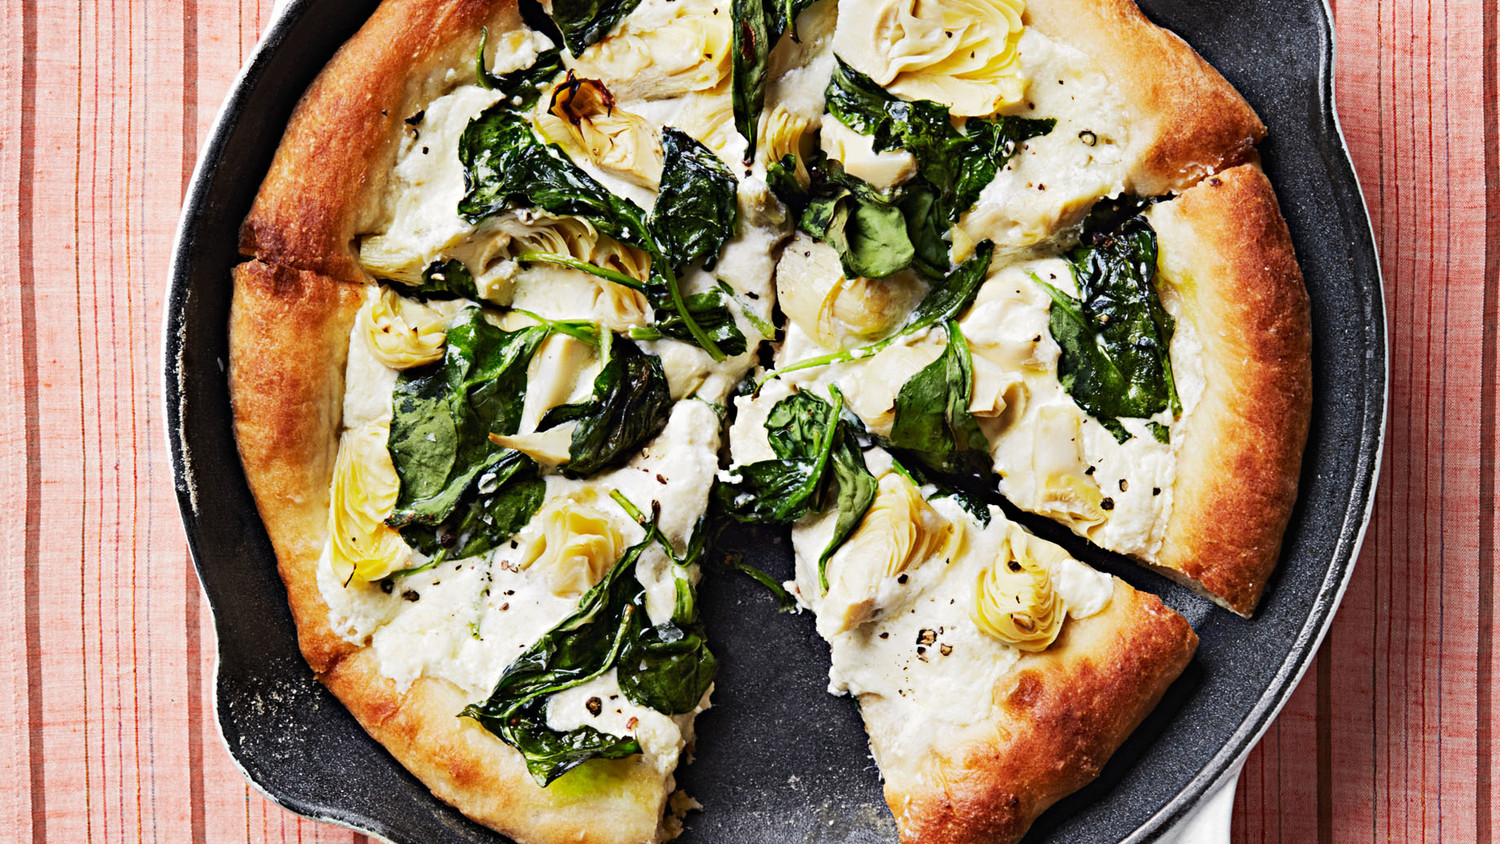 Artichoke And Spinach Skillet Pizza